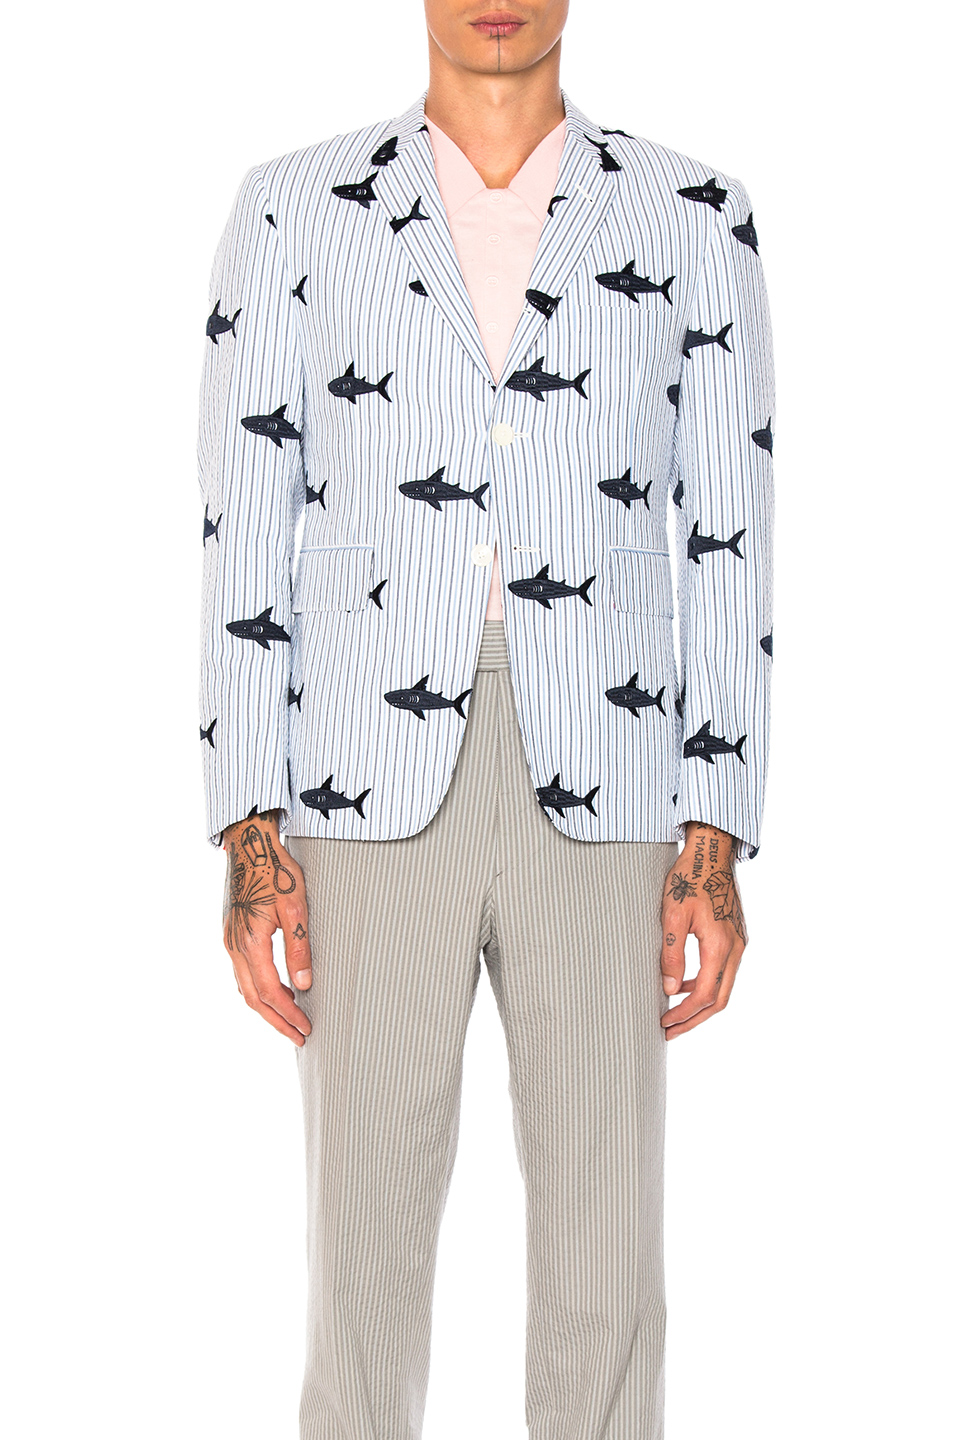 Thom Browne Seersucker Shark Embroidery Blazer in Abstract,Blue,Stripes